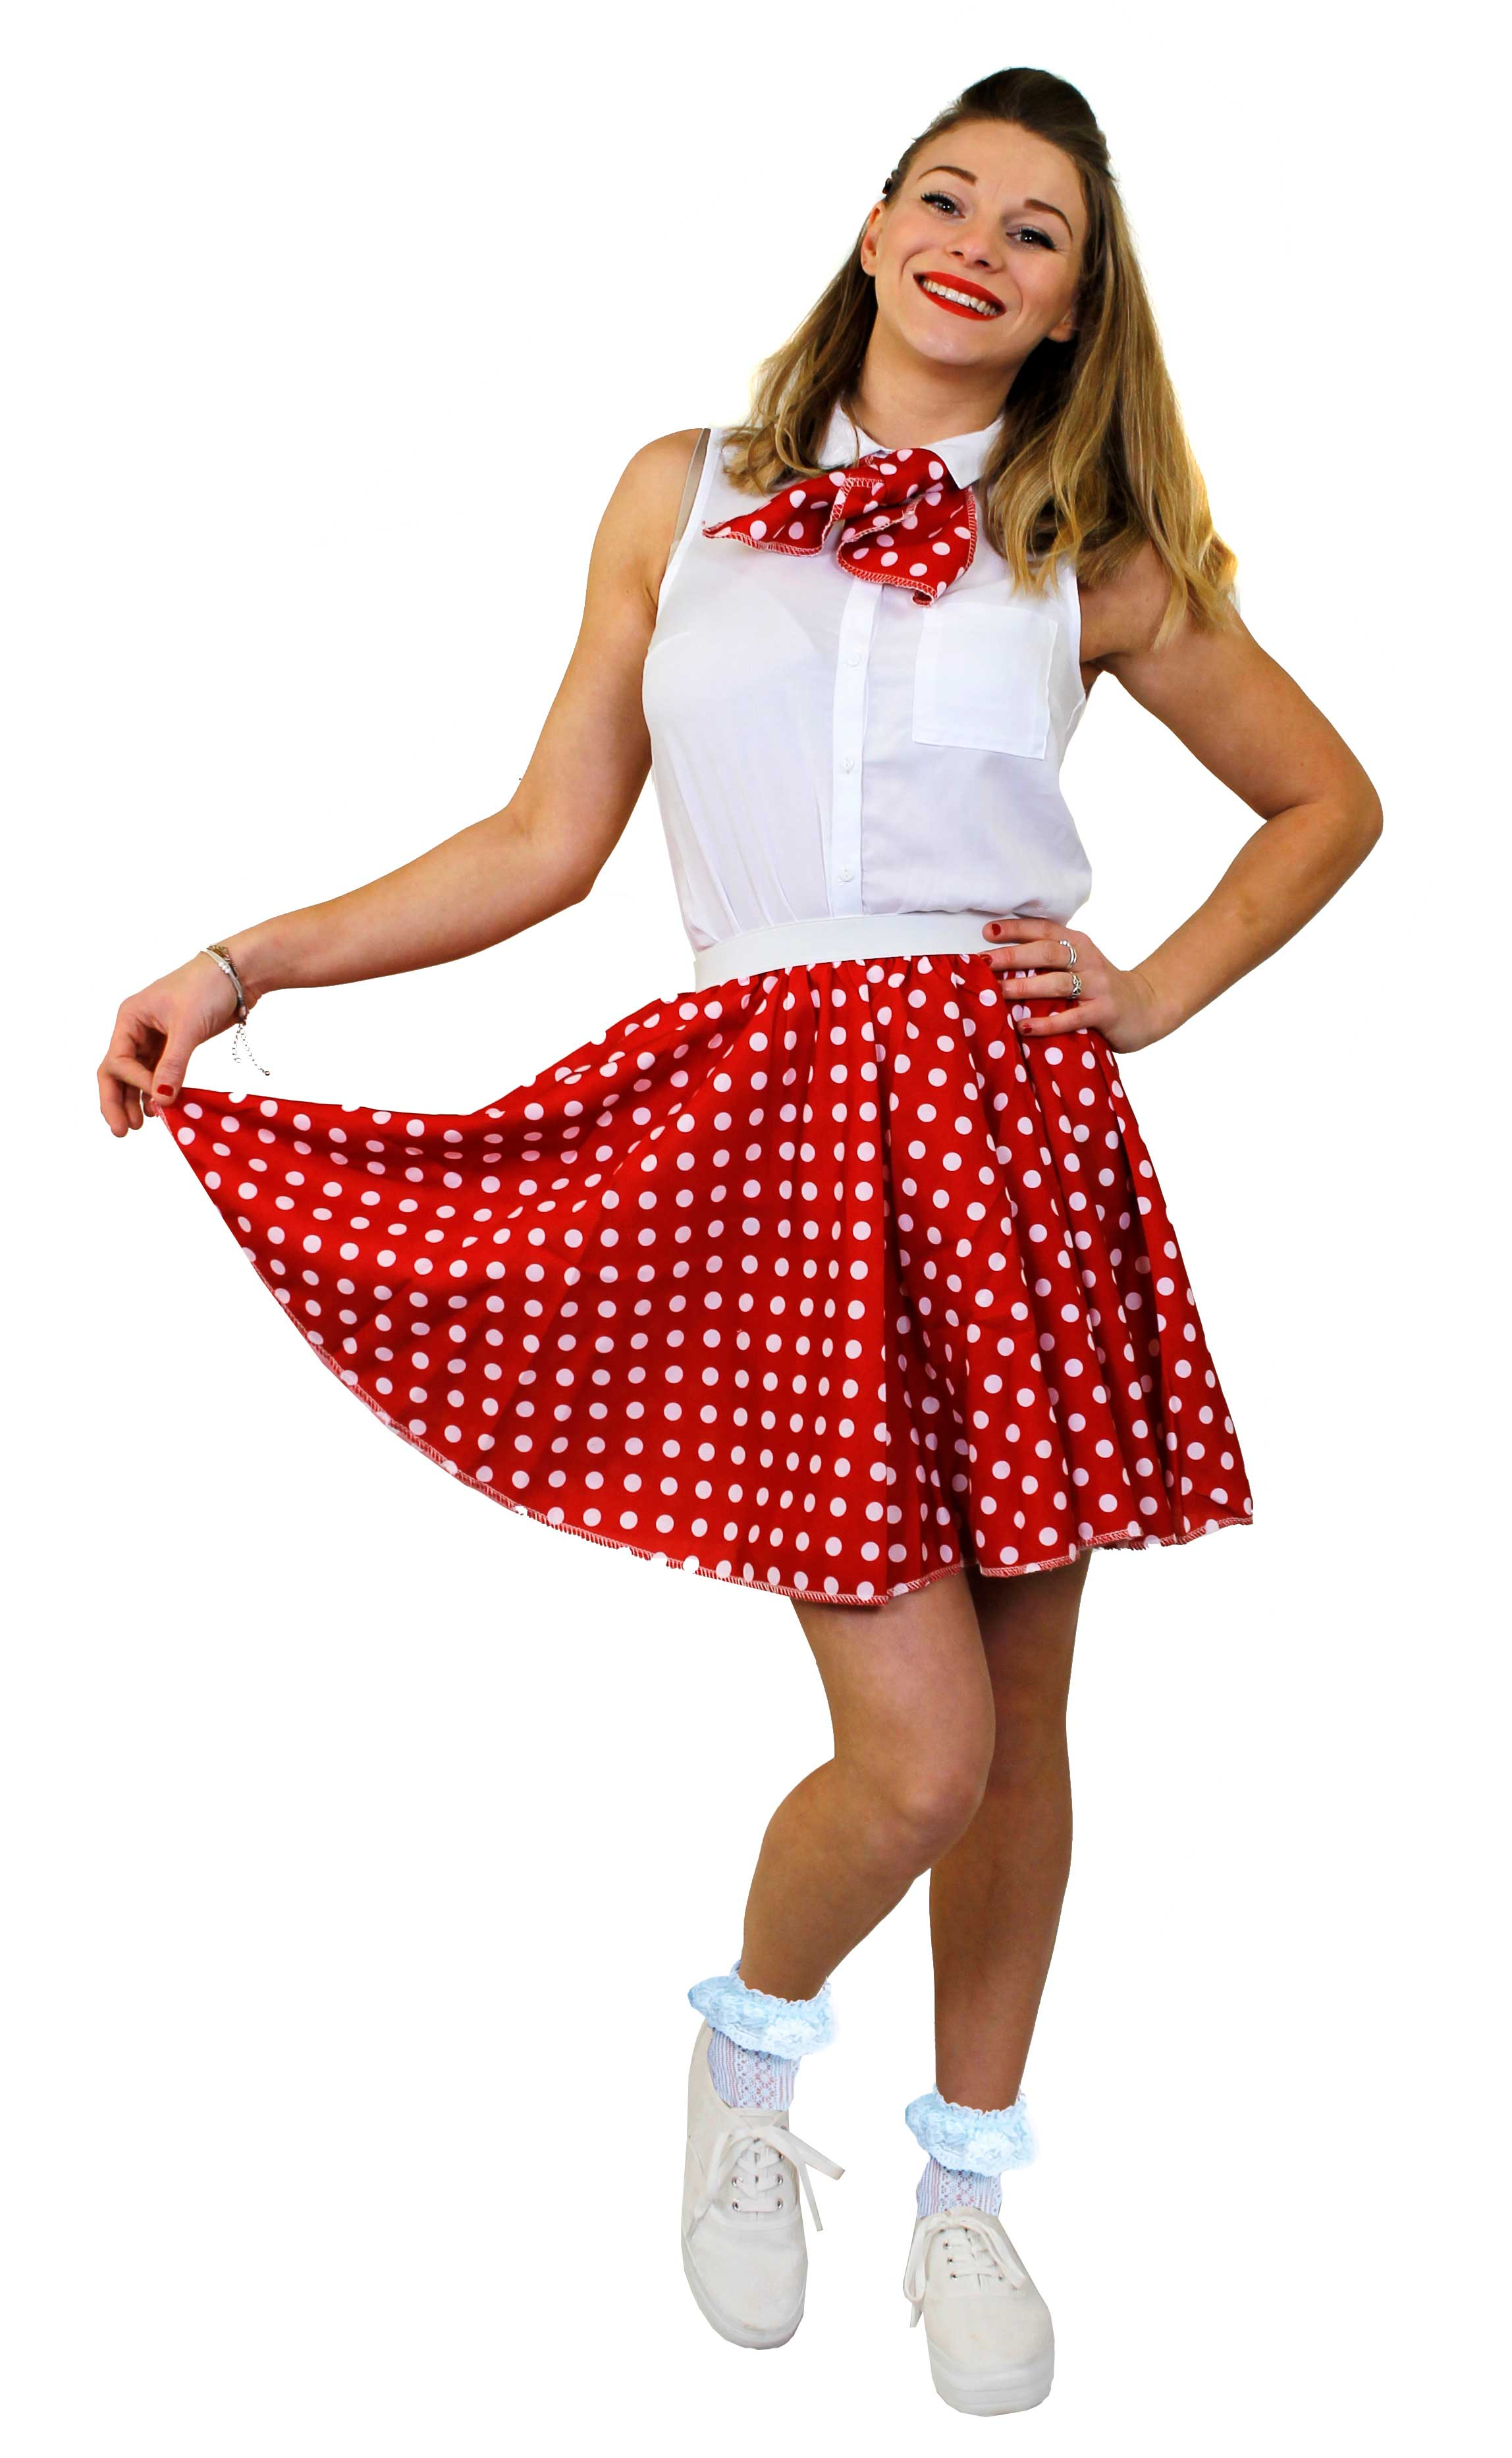 RED POLKA DOT SKIRT WITH WHITE SPOTS /& SCARF 1950S ROCK AND ROLL FANCY DRESS